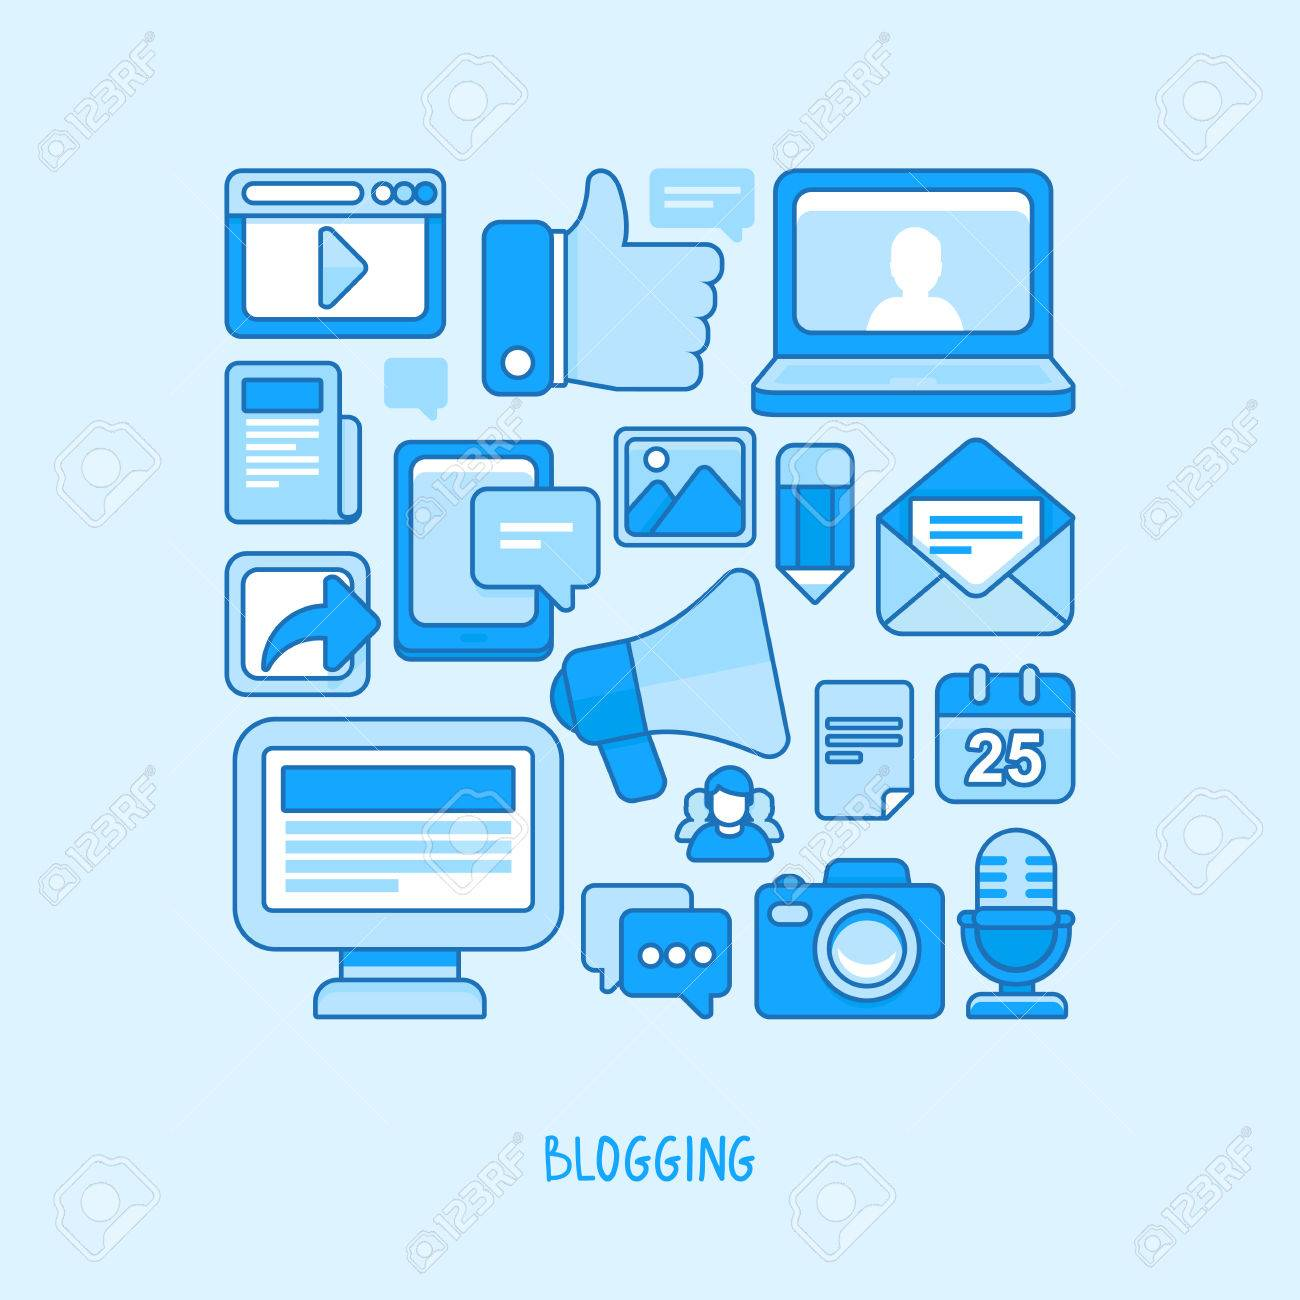 concept in flat style with trendy outline icons - blogging and writing for website Stock Vector - 29042211